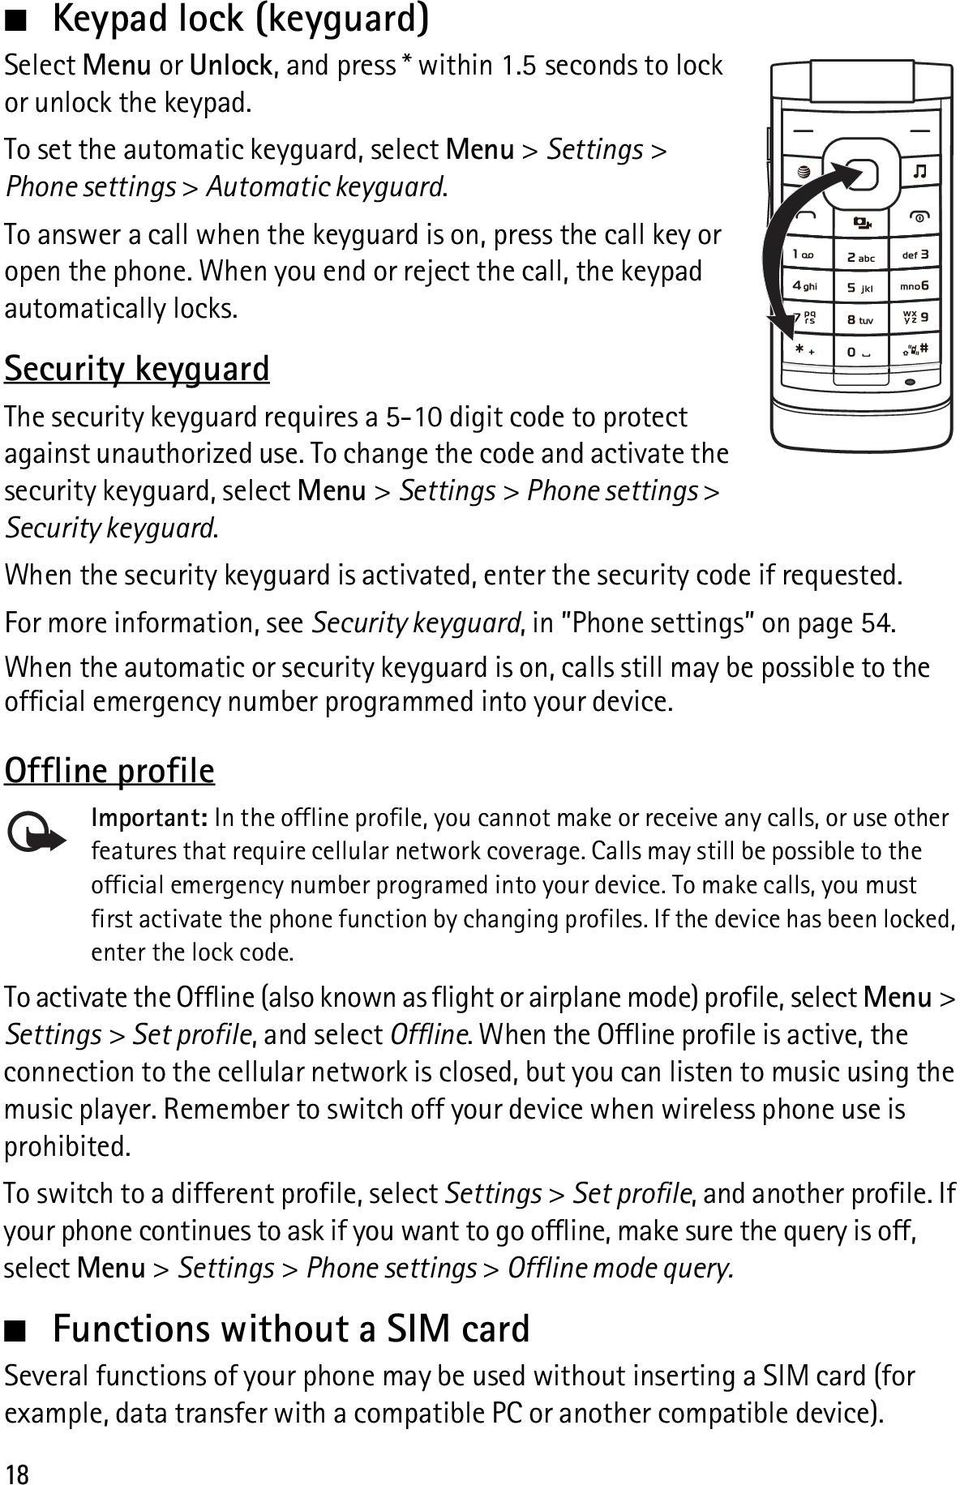 18 Keypad lock (keyguard) Security keyguard The security keyguard requires a 5-10 digit code to protect against unauthorized use.